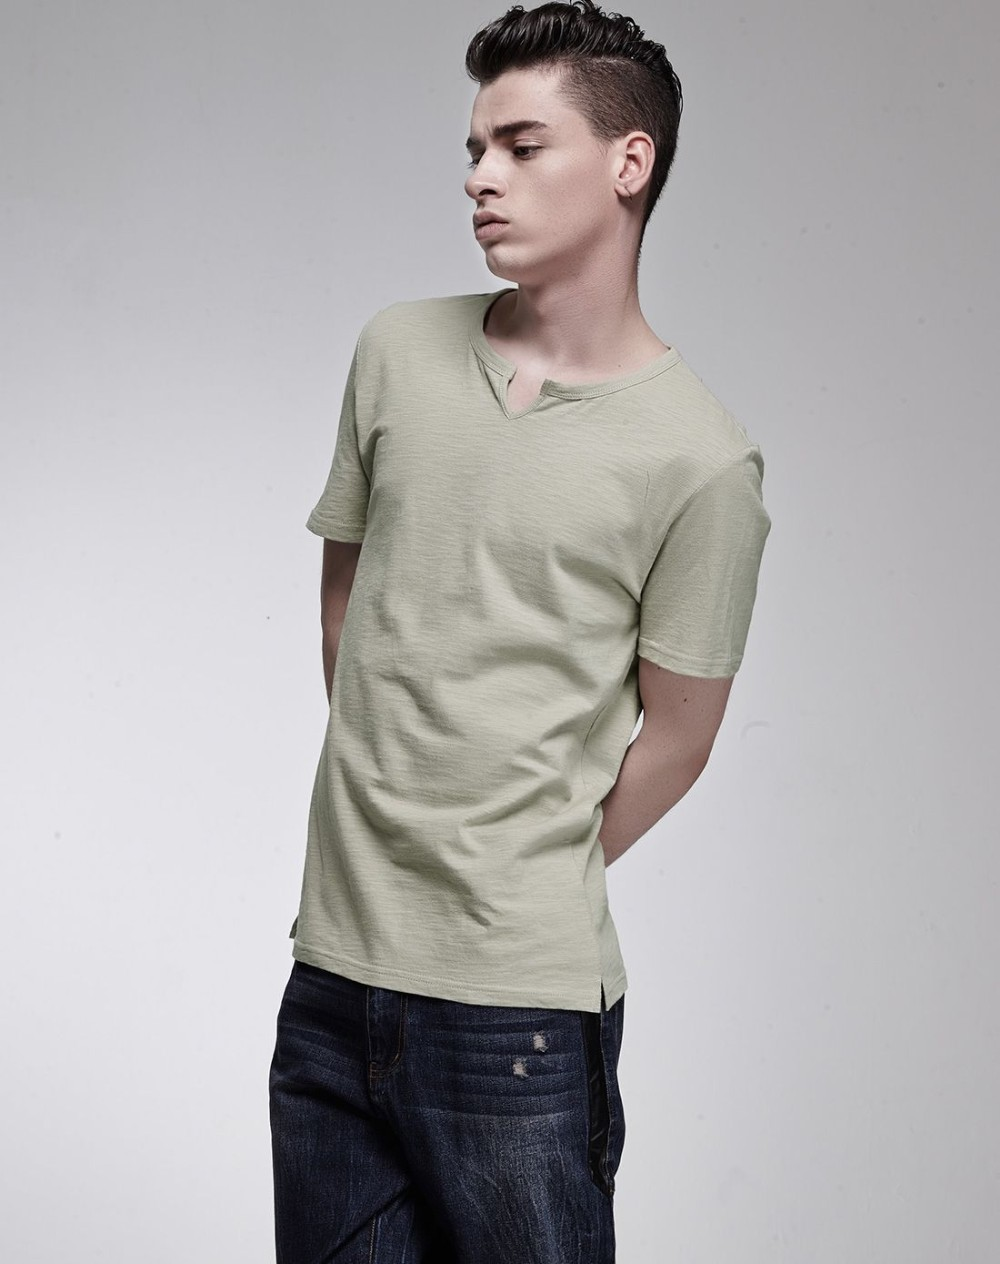 Slub cotton v-neck short sleeve clothing tshirts for men wholesale factory price